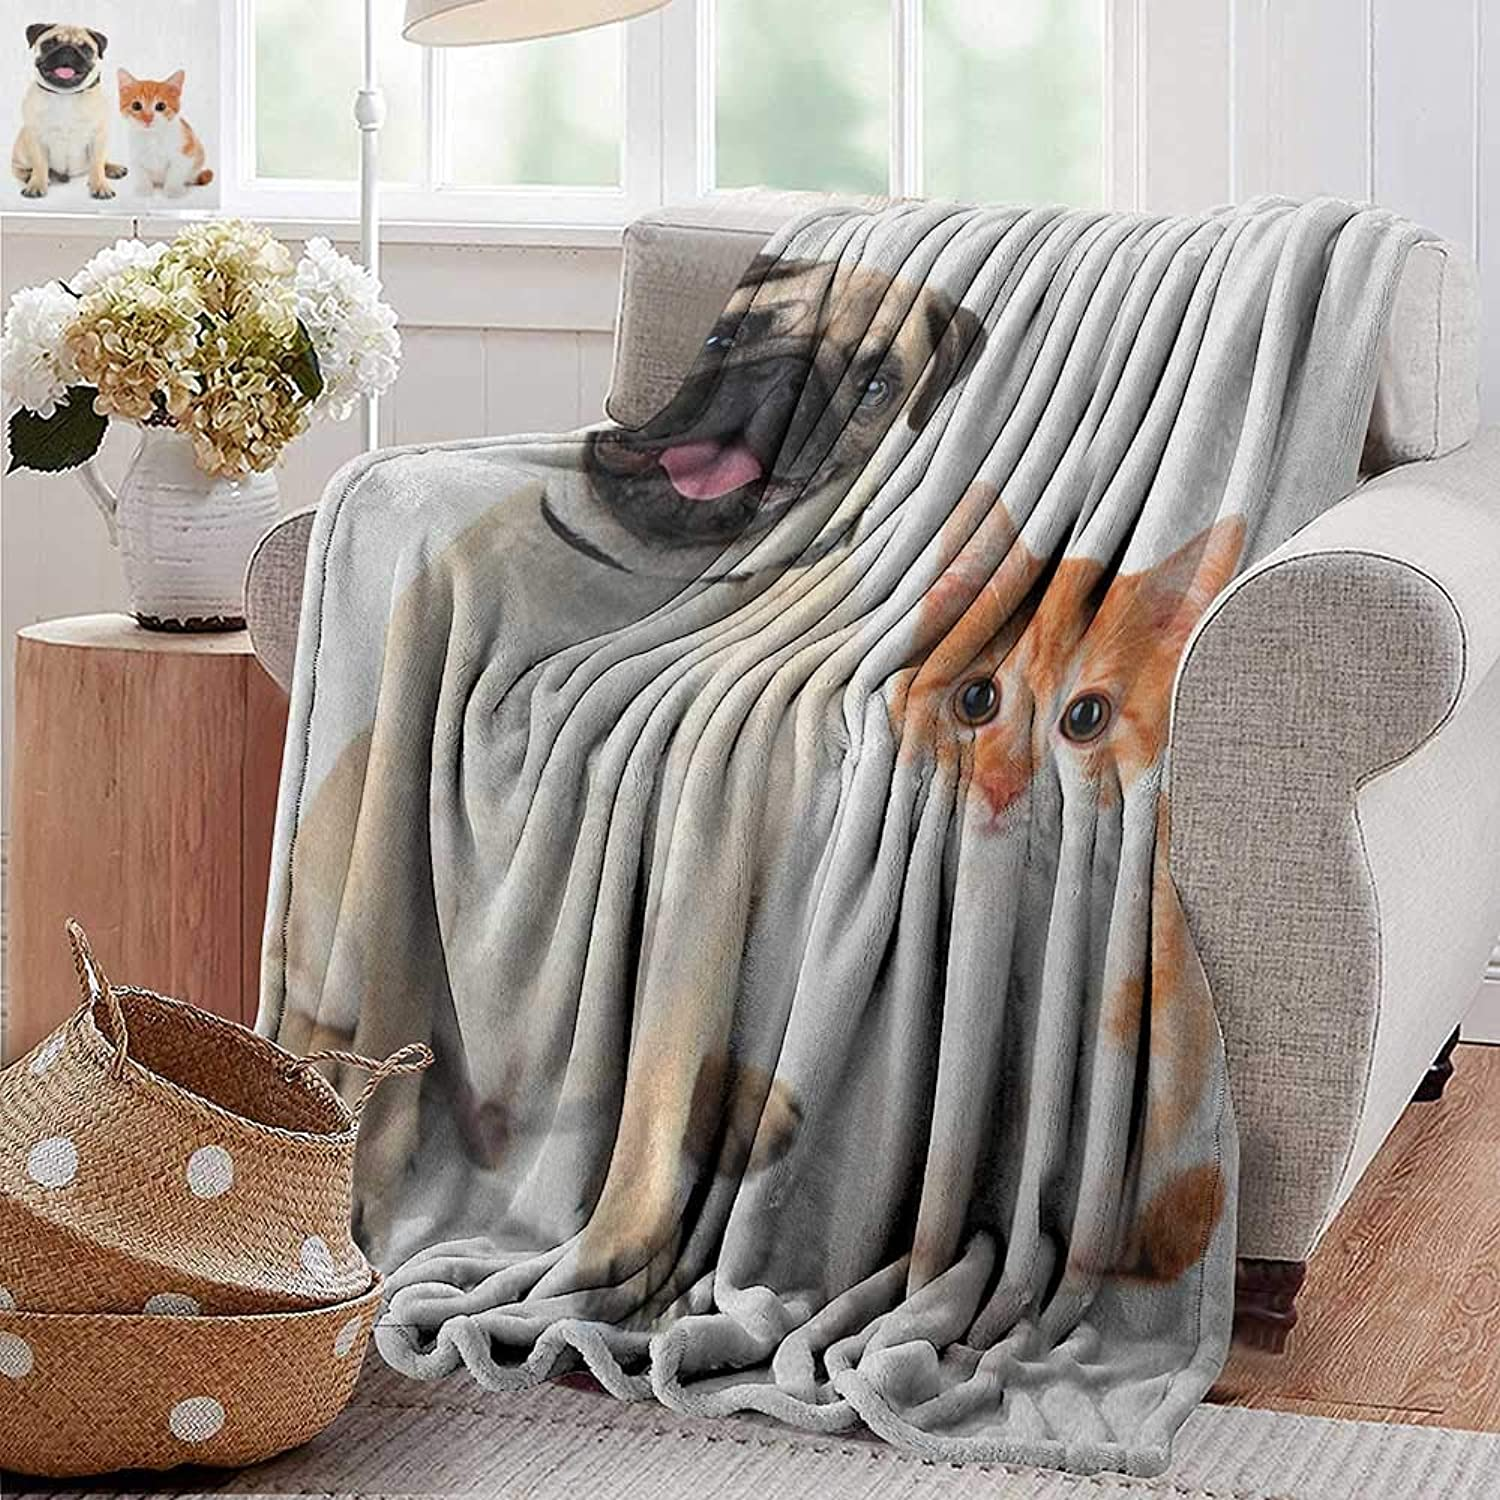 Weighted Blanket for Kids,Pug,Adorable Kitten and Puppy Photography Cute Animal Fun Young Pets Happy Image, Cream orange White,Weighted Blanket for Adults Kids, Better Deeper Sleep 35 x60